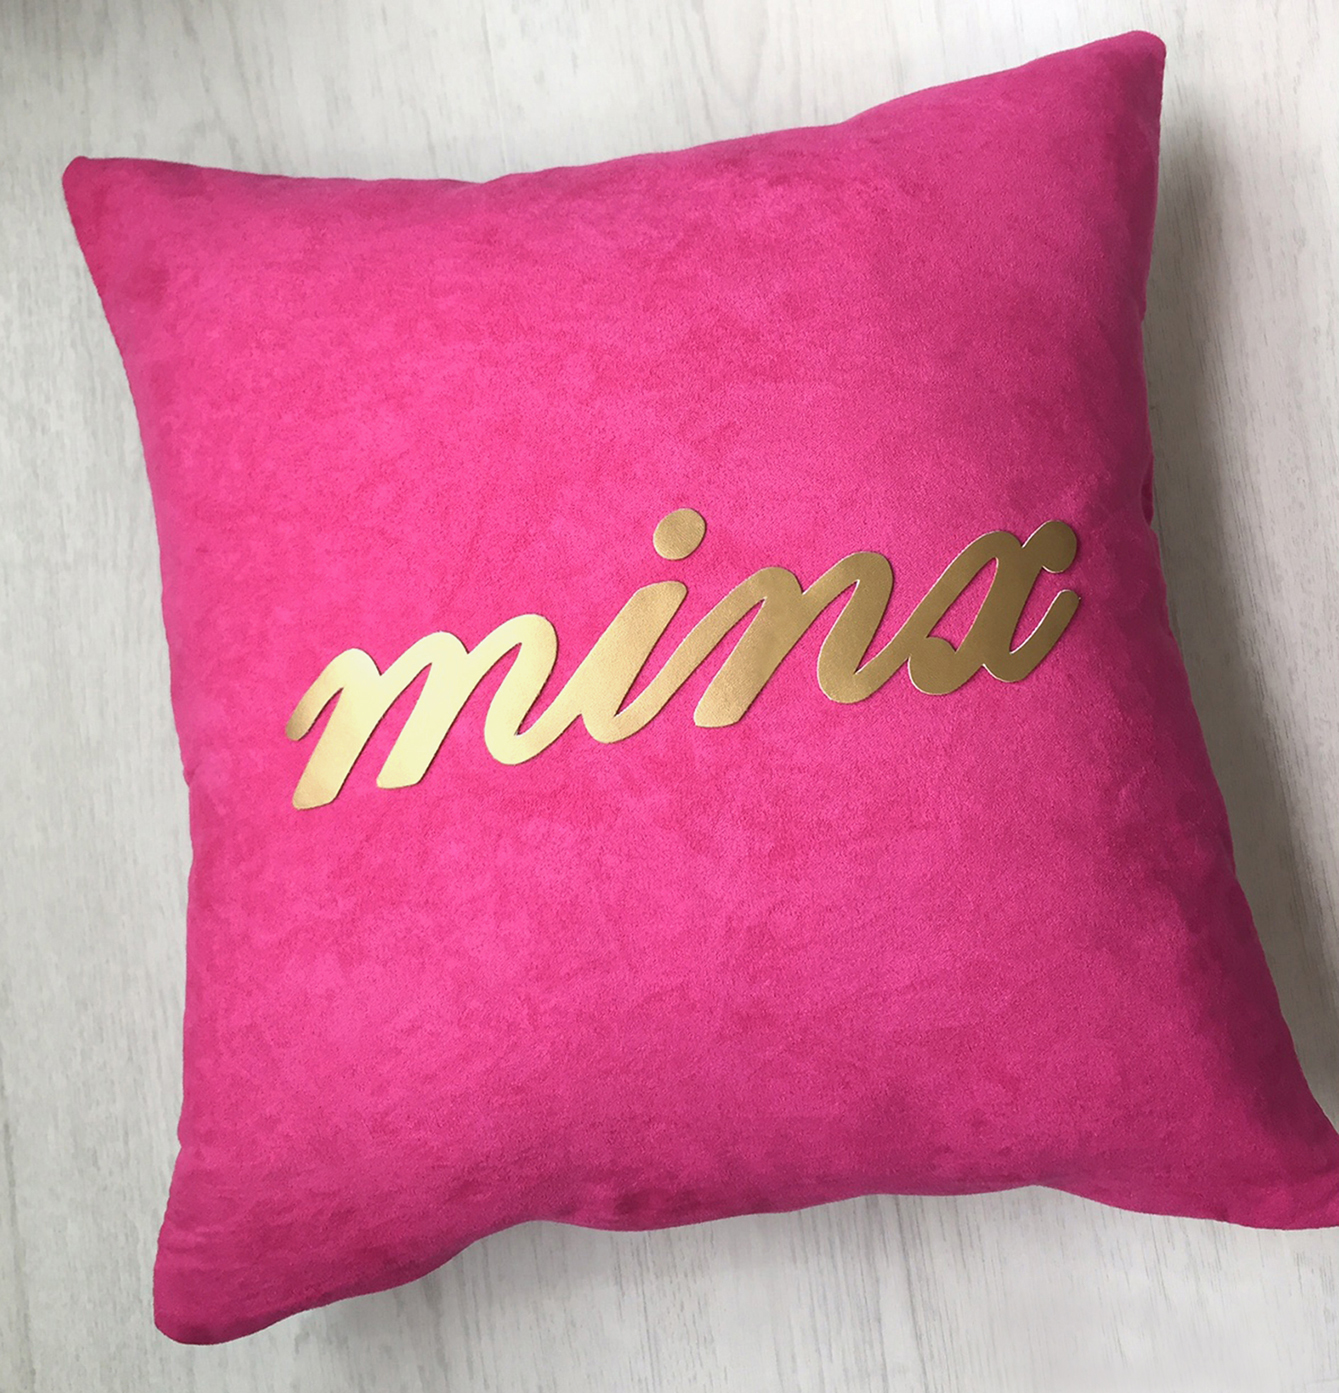 Handmade Gold Minx Text Decorative Fuchsia Pillow Cover. 16inch Hot Pink And Gold Cushion Cover. Modern Statement Pillow Case